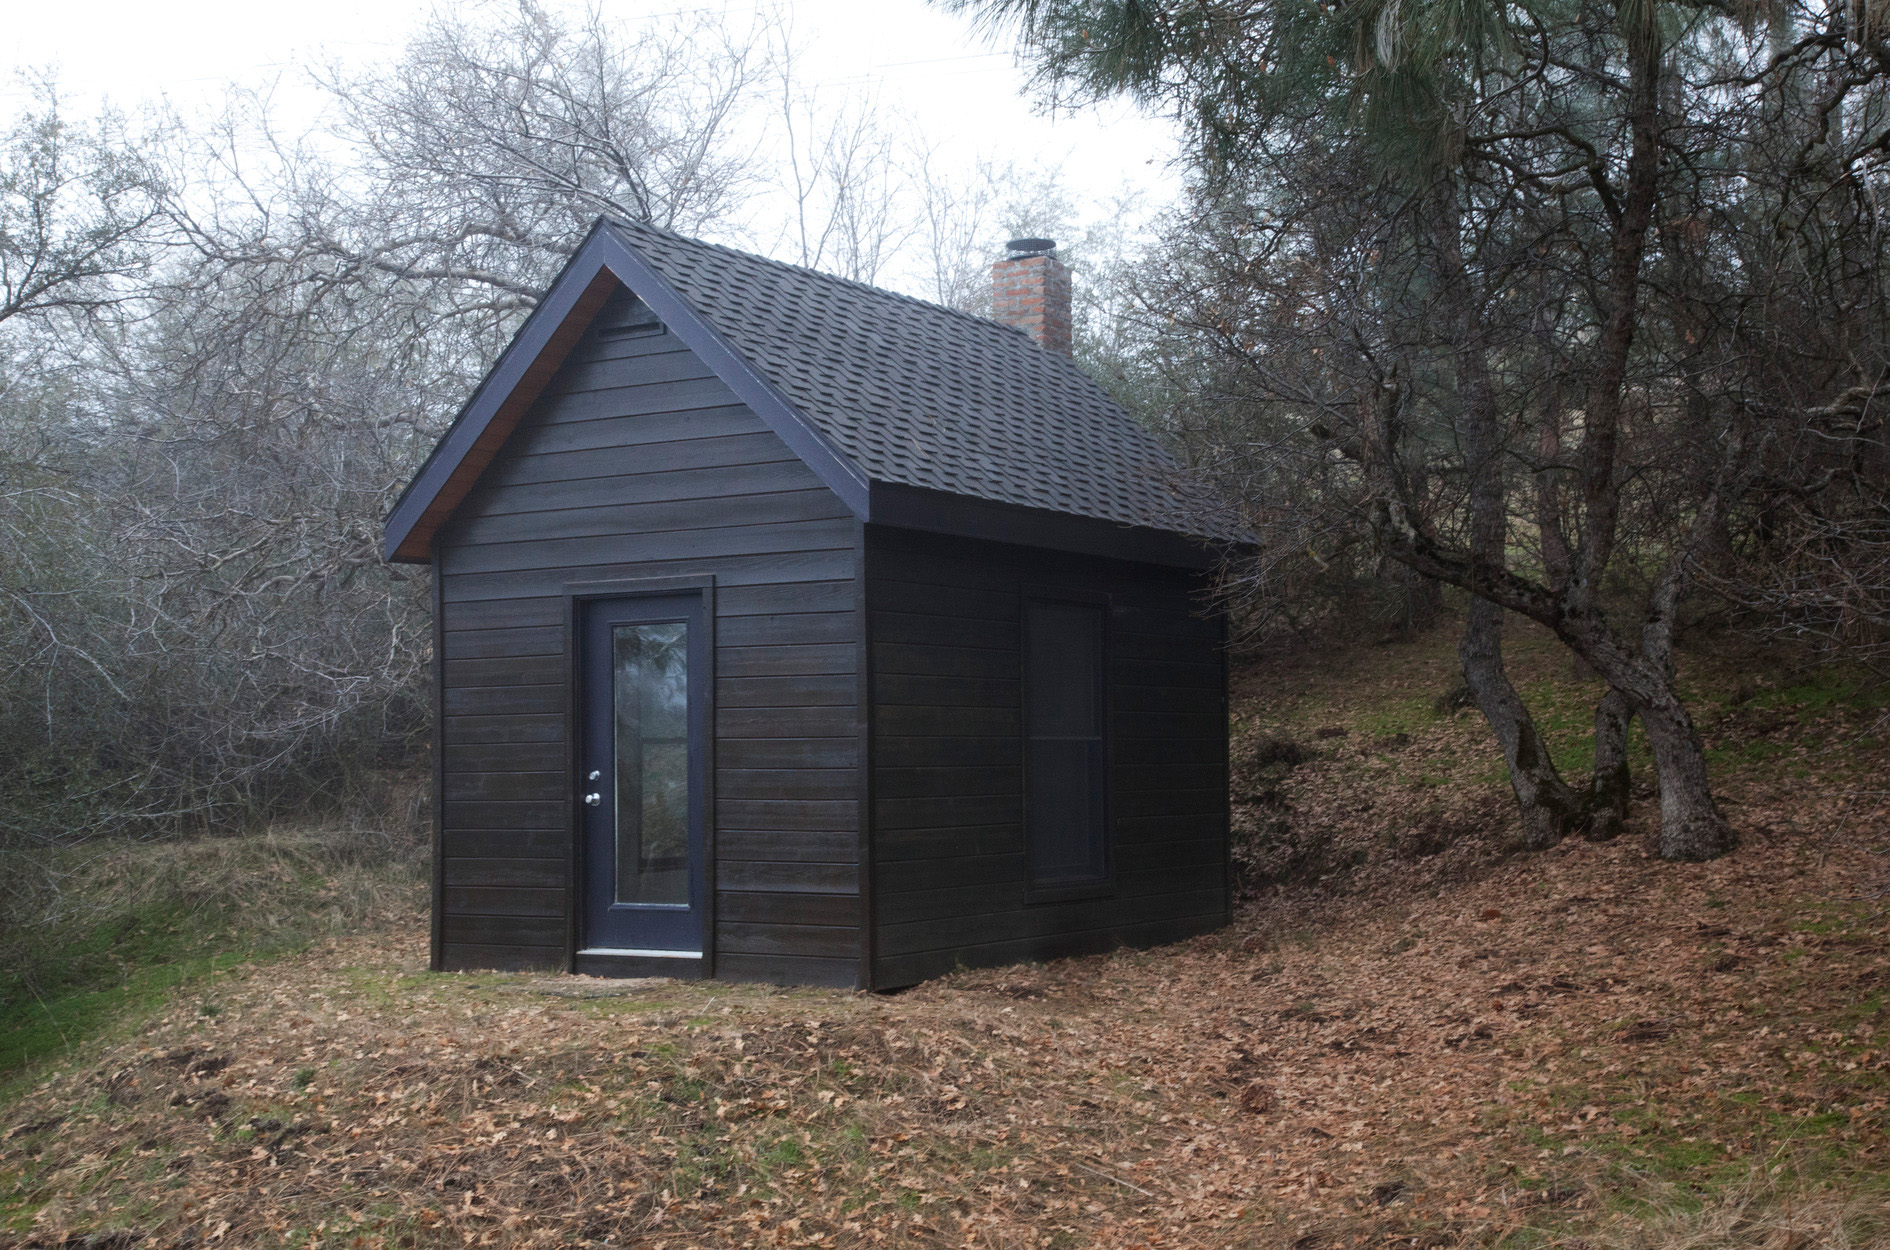 James Benning, <em>Henry David Thoreau Cabin</em> (exterior), 2007-08. 14' 4 in x 10' 4 in x 14'. All images courtesy of the artist unless otherwise noted.